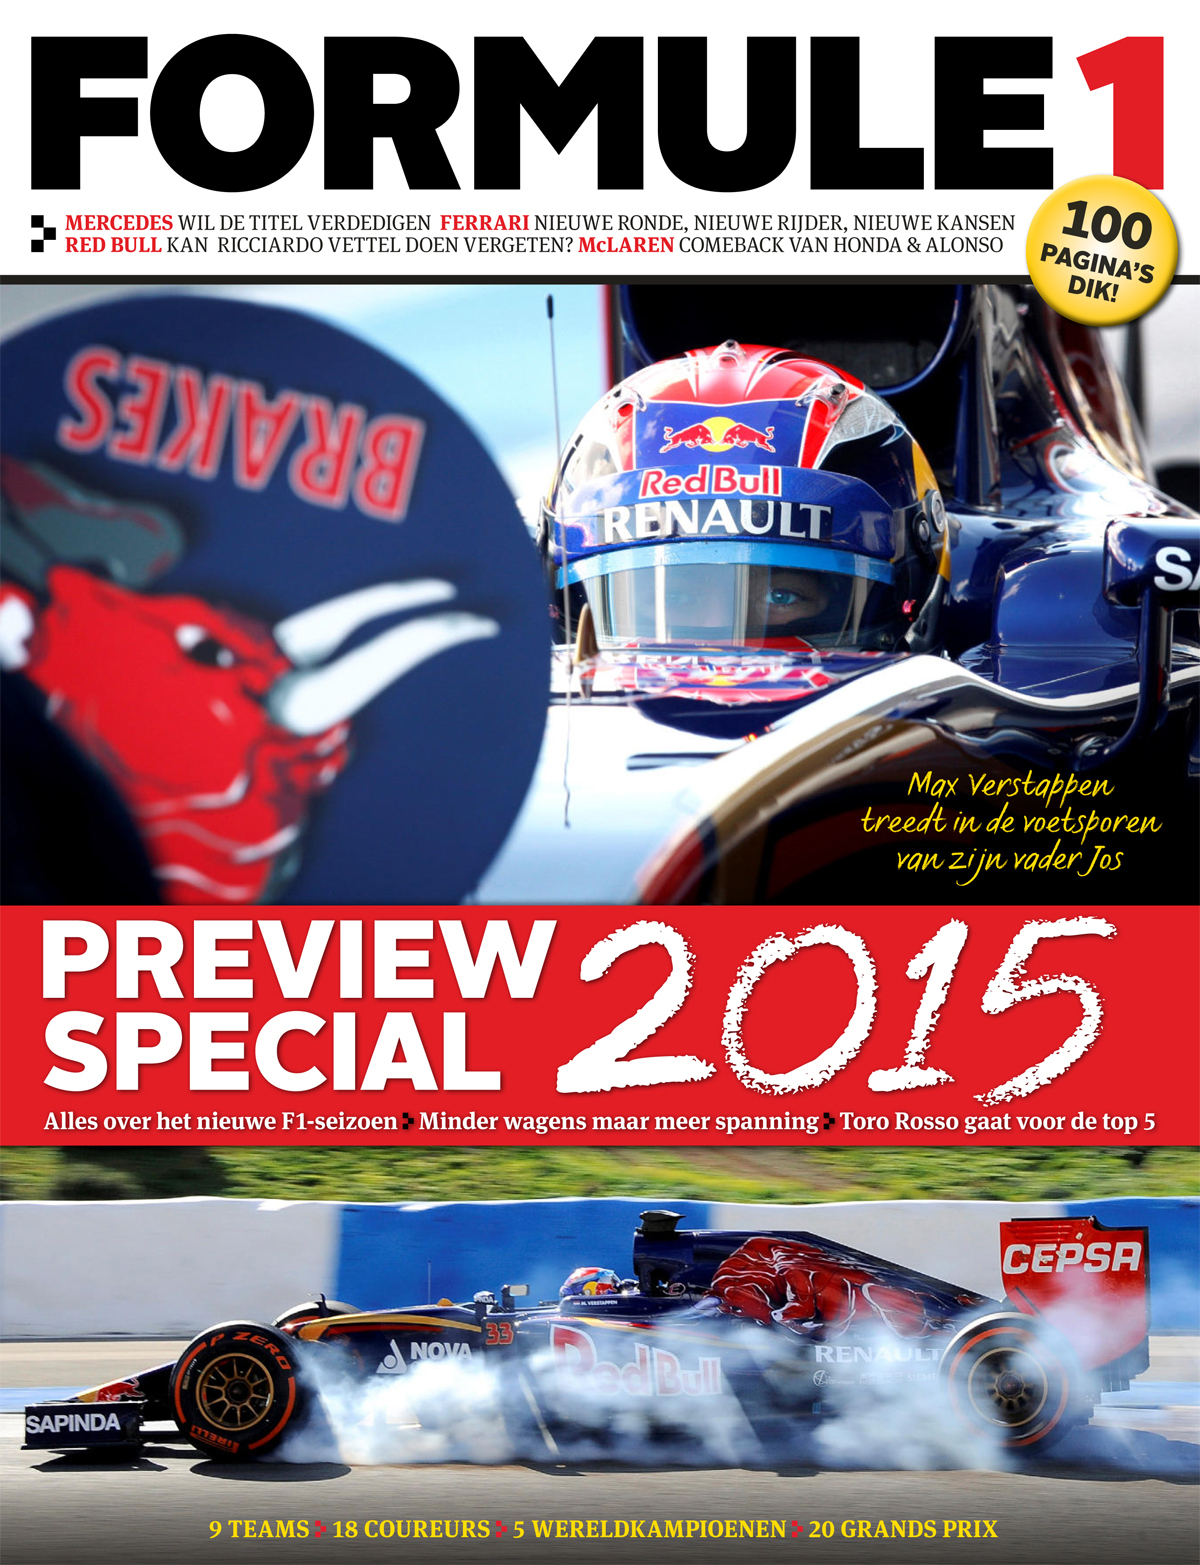 Preview Special 2015 is uit!